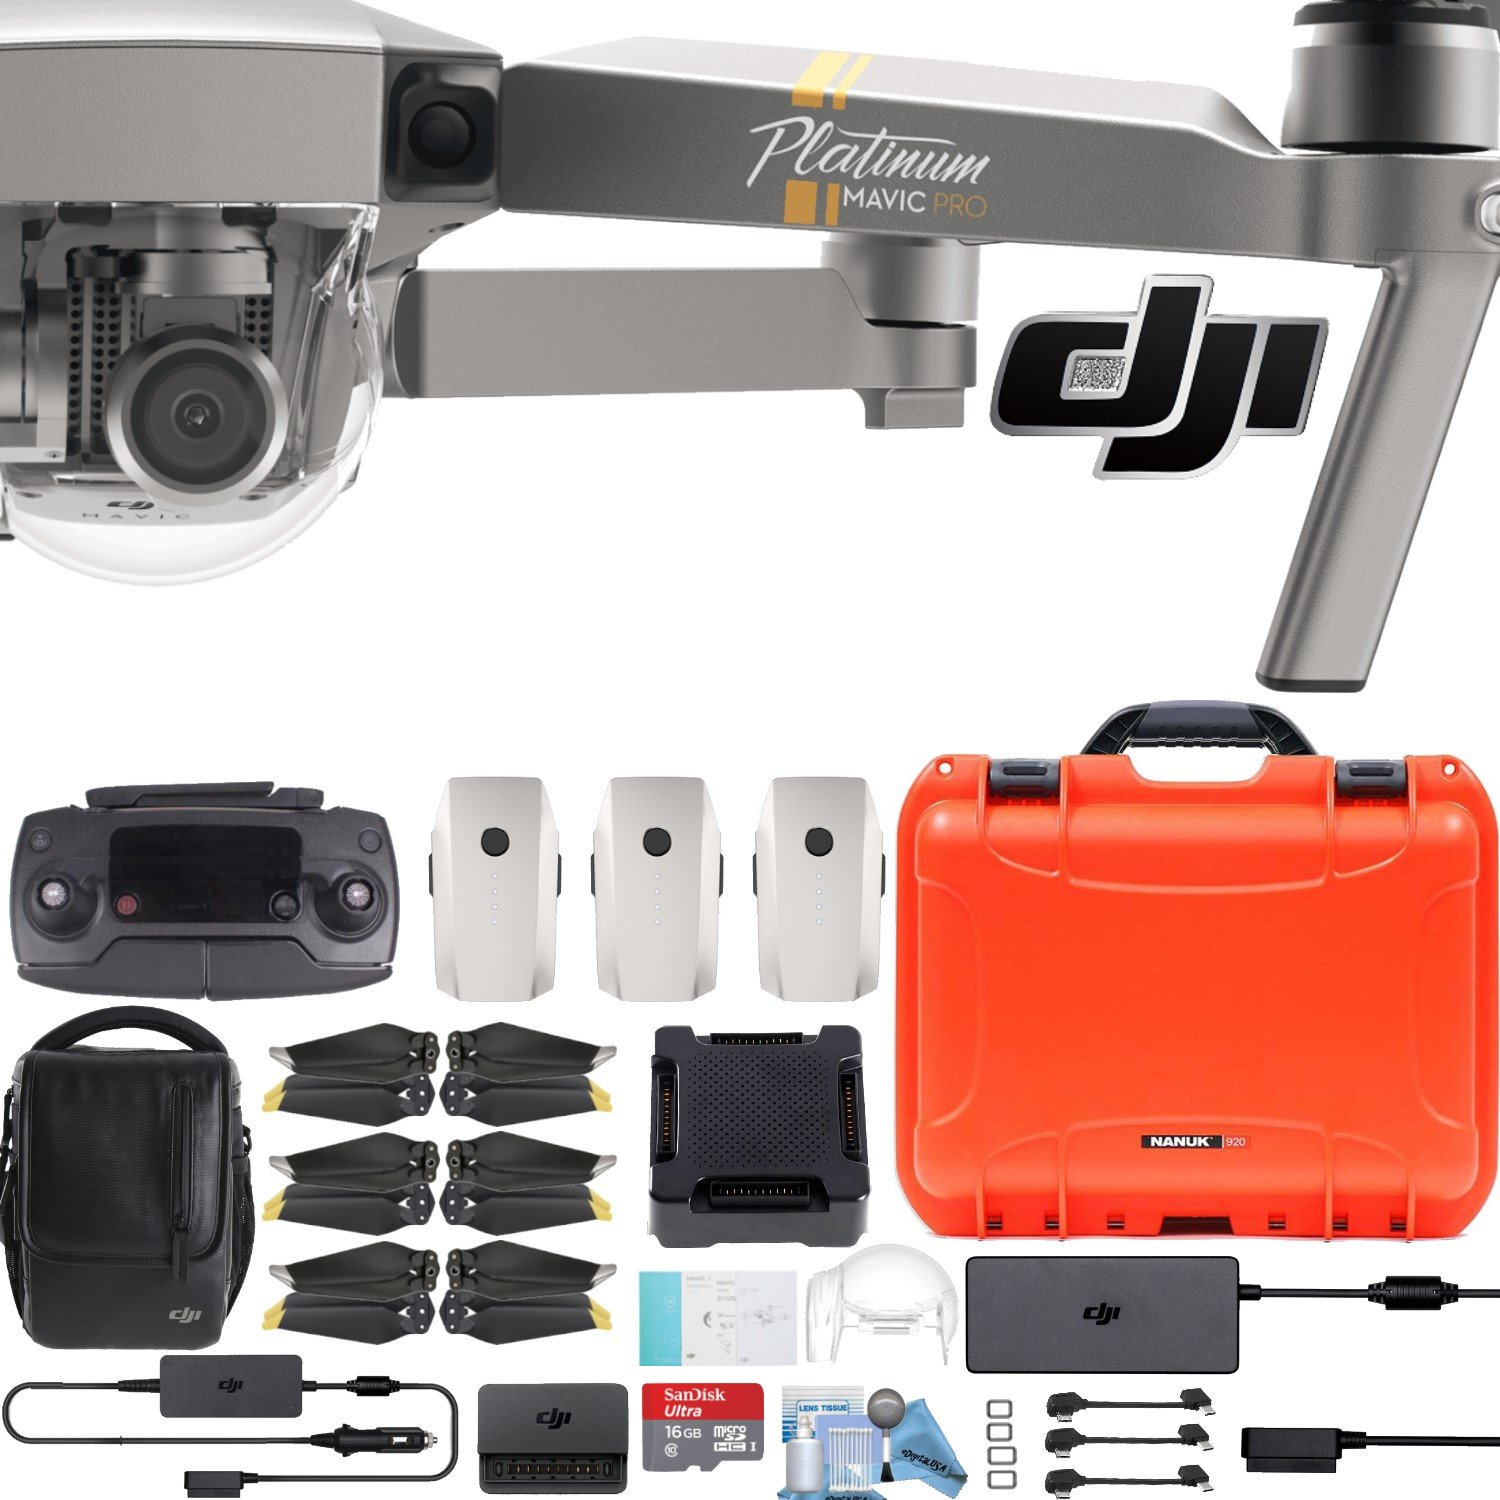 DJI Mavic Pro/Air/Platinum Combo with耐衝撃+防水ハードケース+パイロットバンドル Mavic Pro Platinum Fly More Combo DJIMAVICPRO B079T67QM6 Mavic Pro Platinum Fly More Combo|W/ Hard Case Orange W/ Hard Case Orange Mavic Pro Platinum Fly More Combo